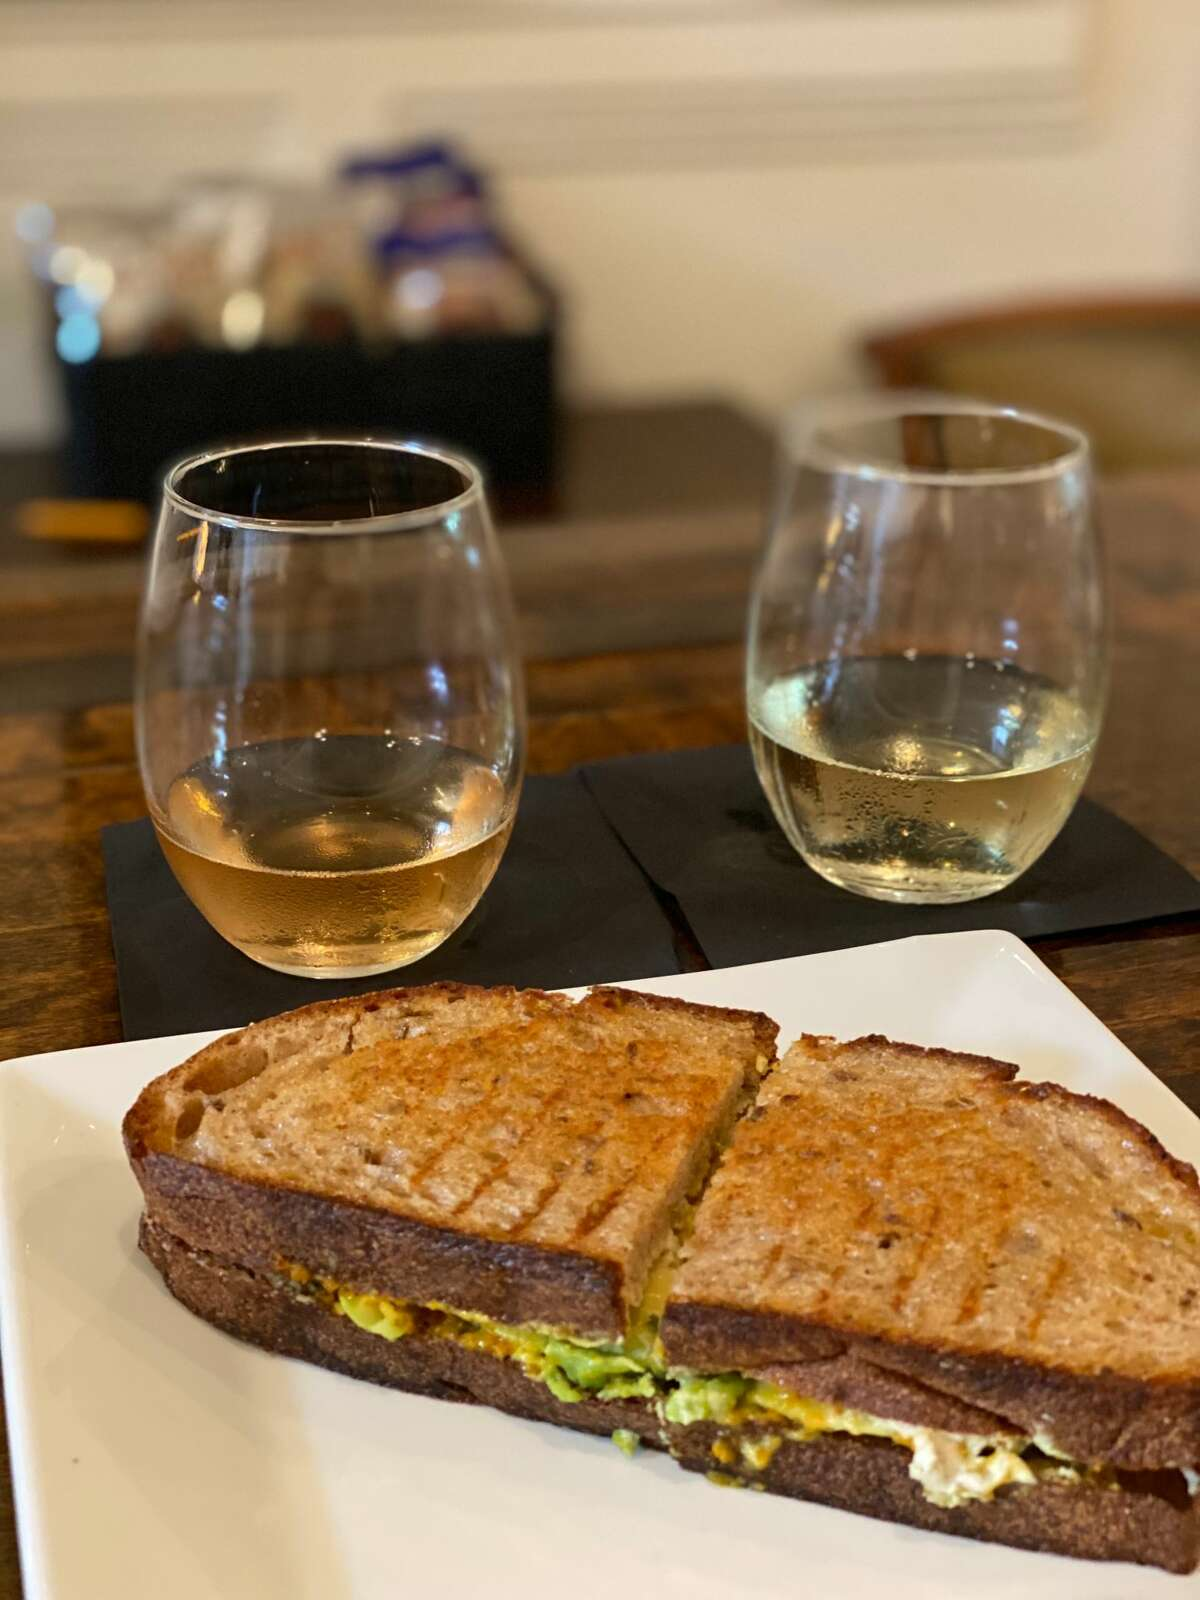 The grilled cashew-cheese sandwich on local rye at Poured Candle Bar in Hudson has avocado and ginger-turmeric jam.